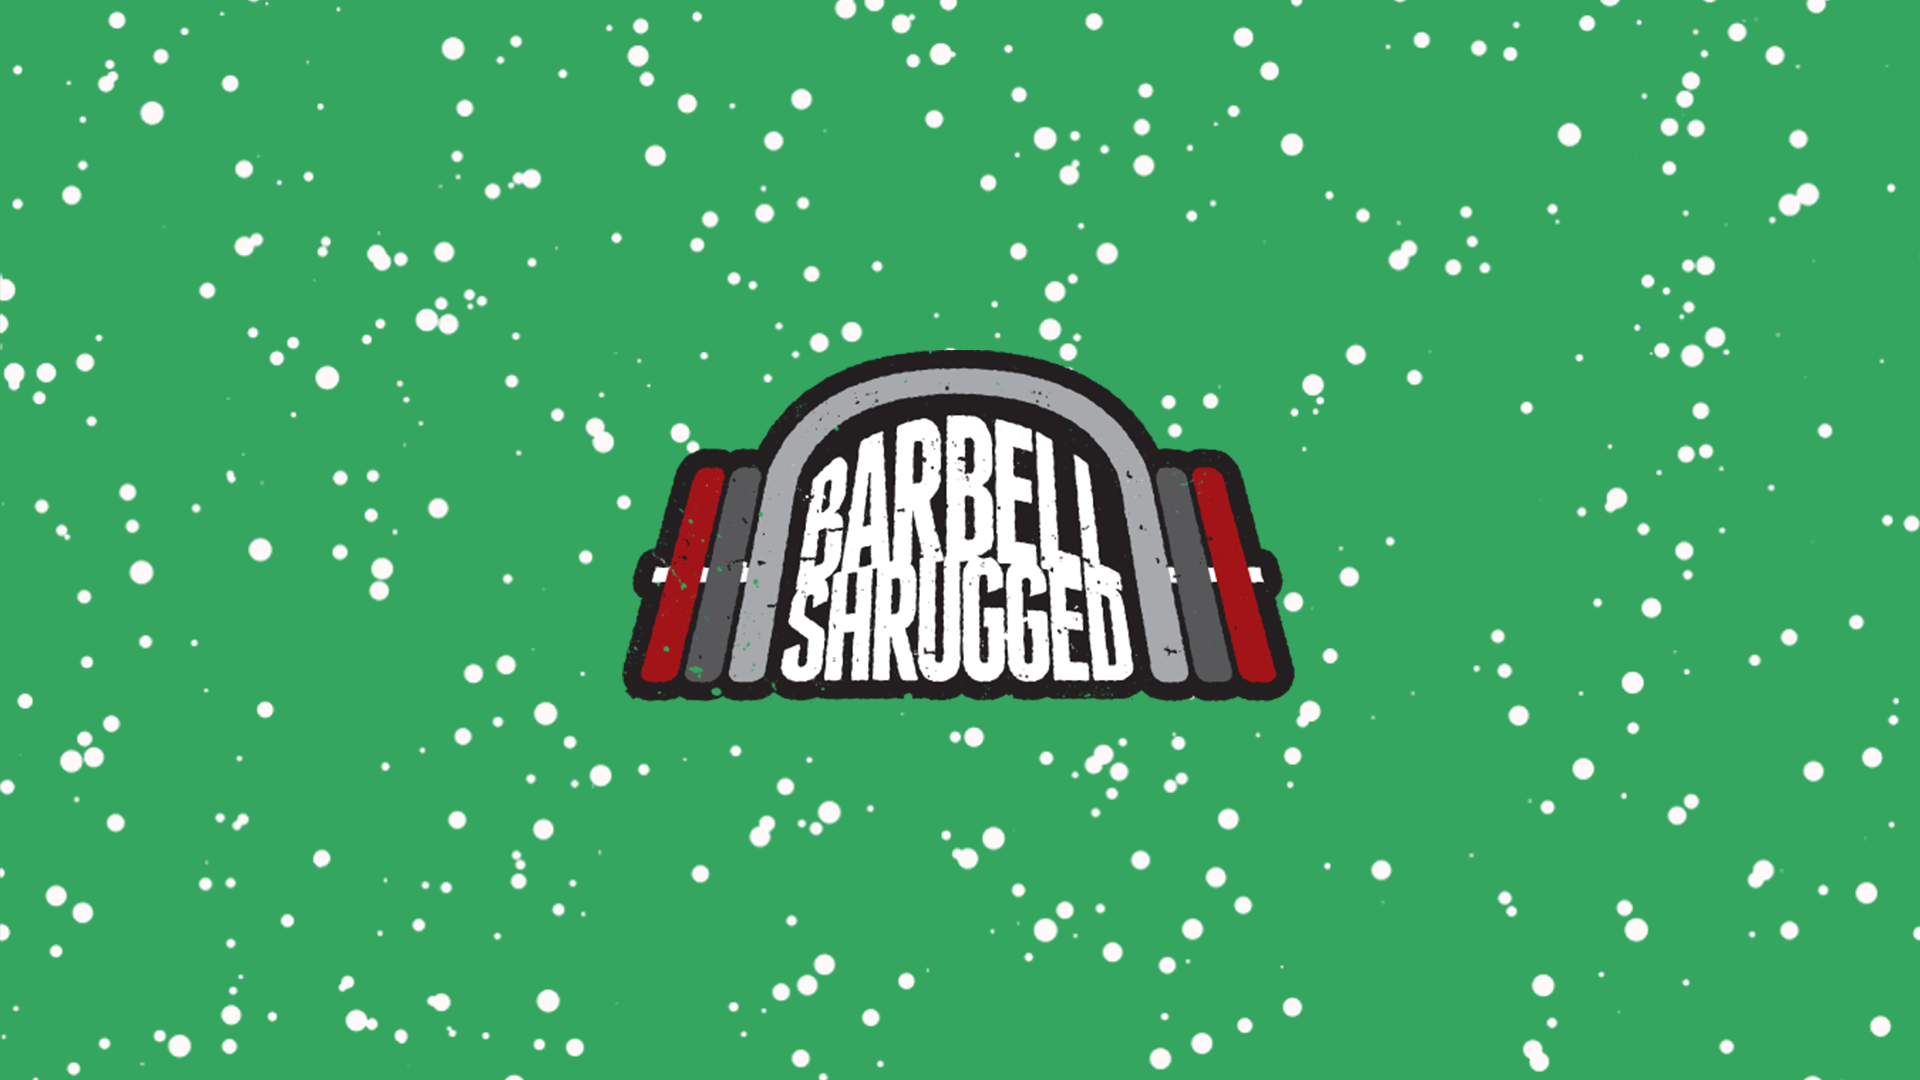 The Best of Christmas w/ Christmas Abbott & Barbell Shrugged